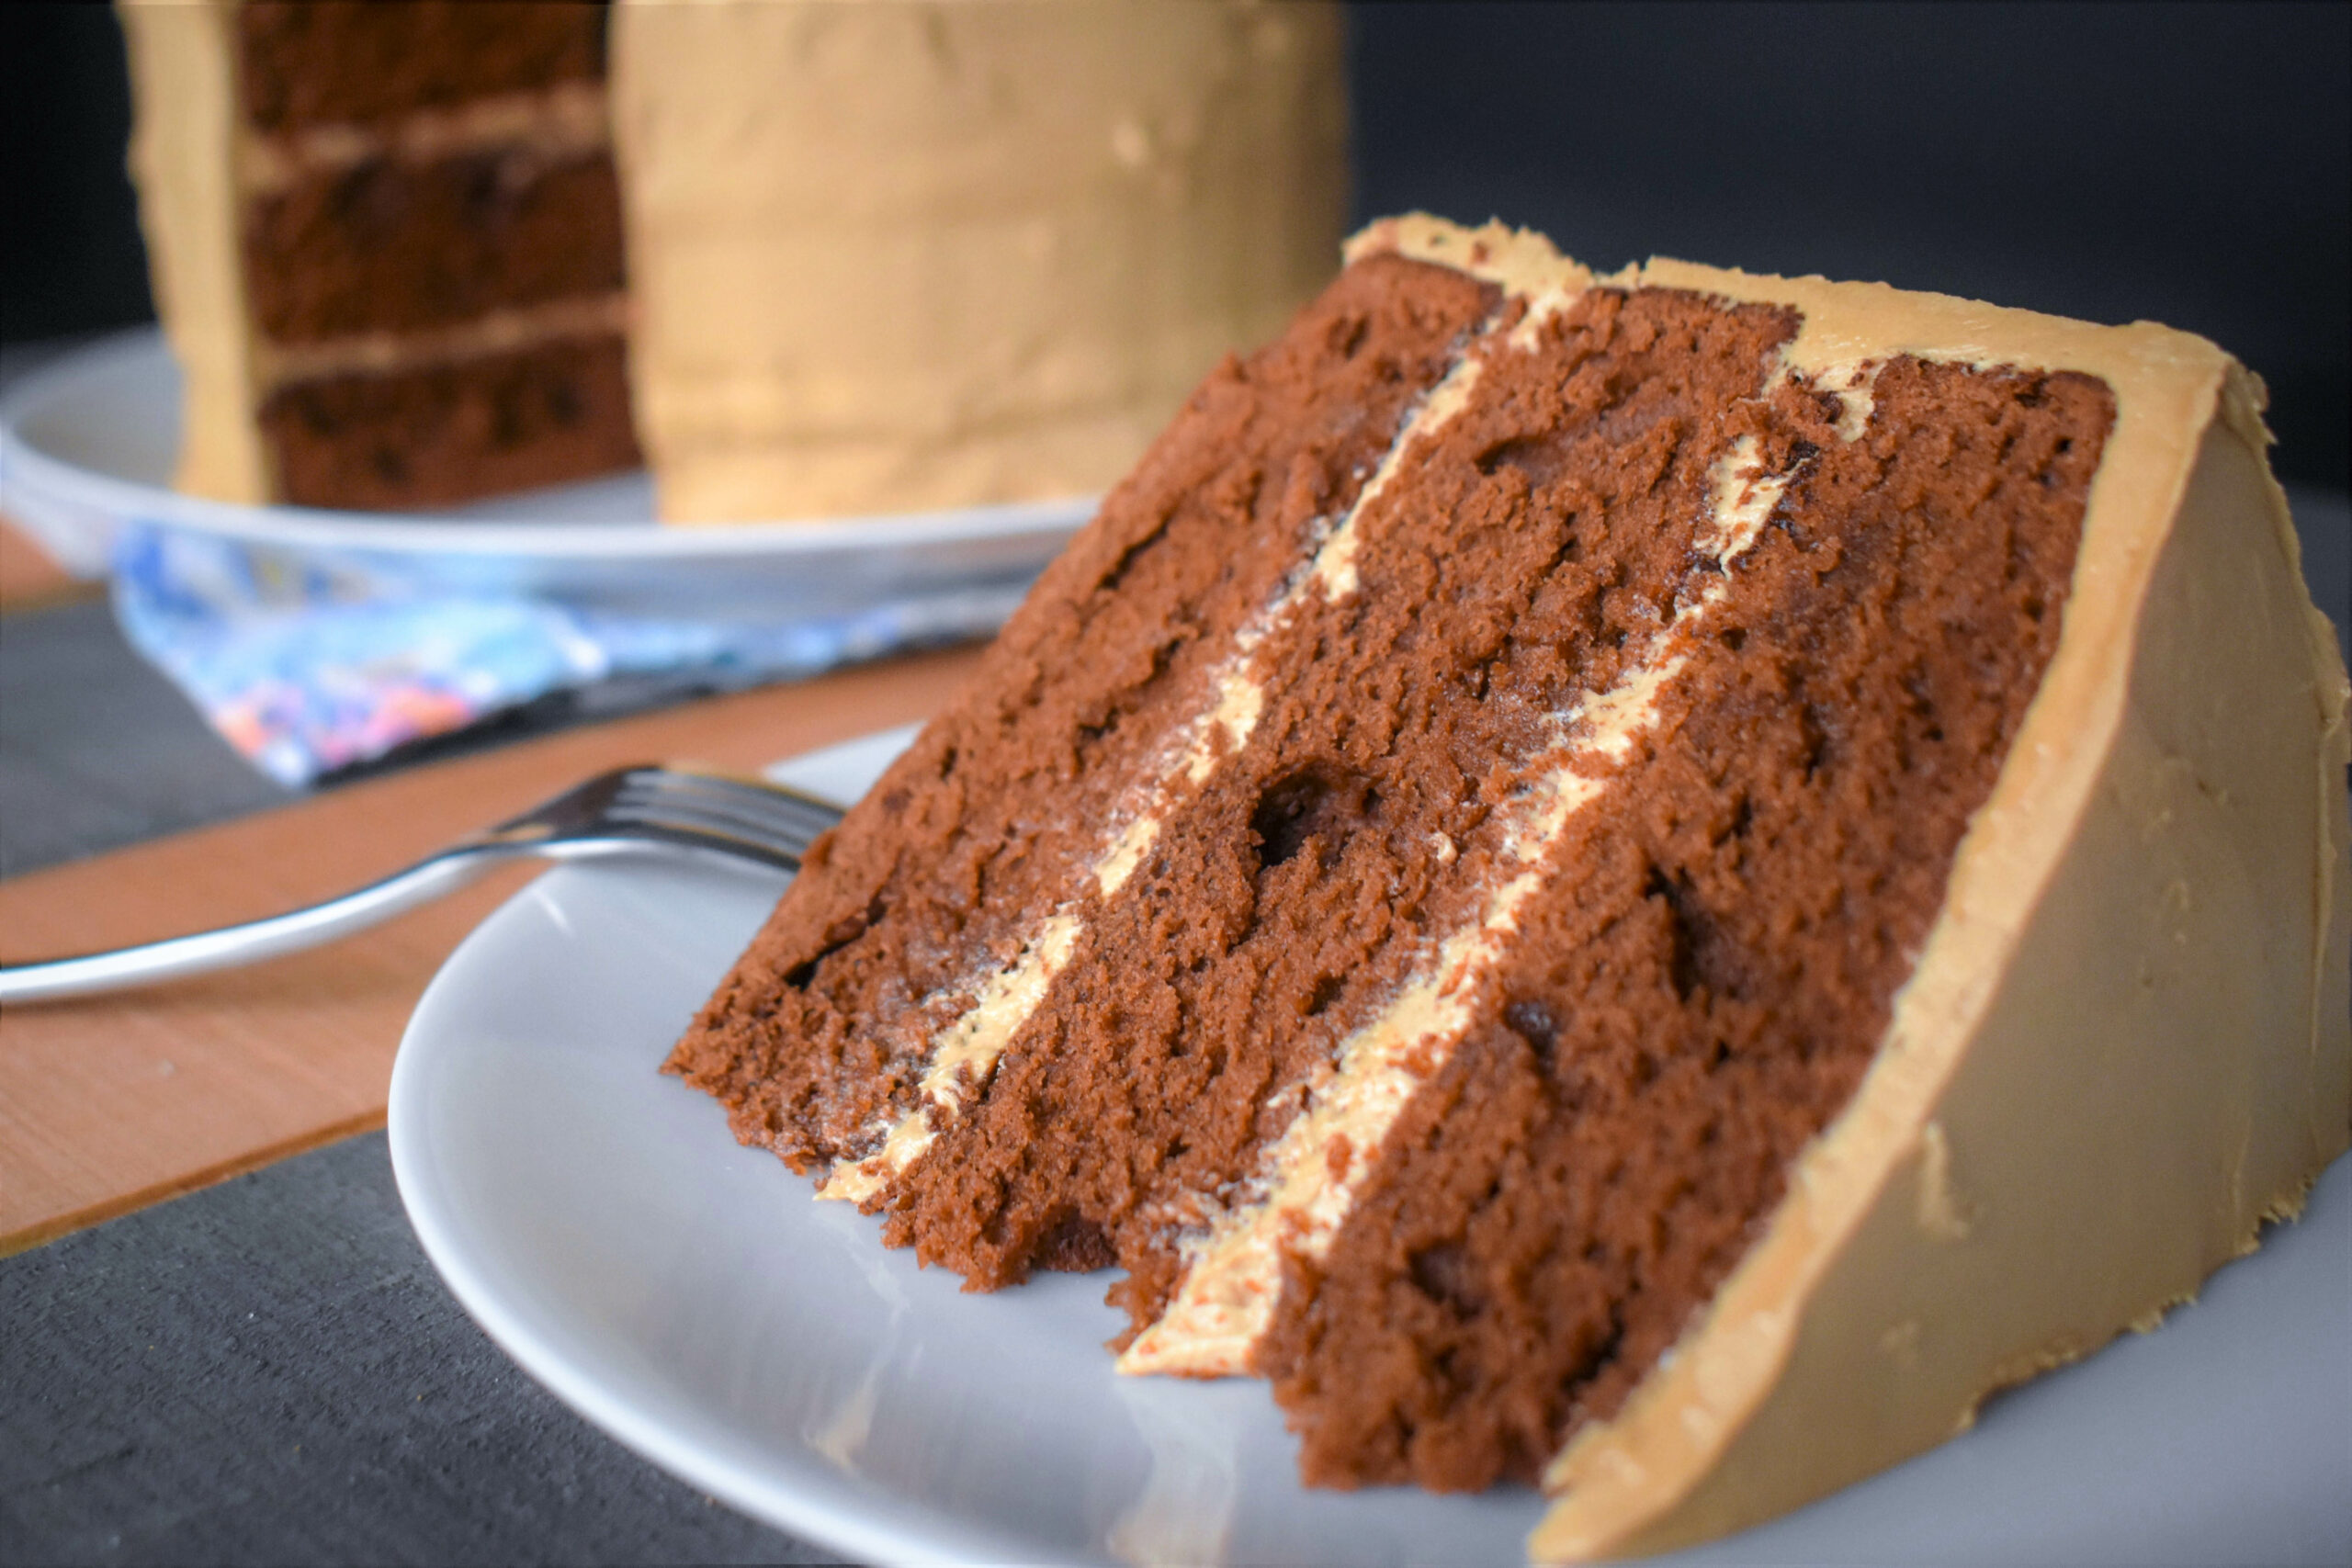 Chocolate Cake with Mocha Icing